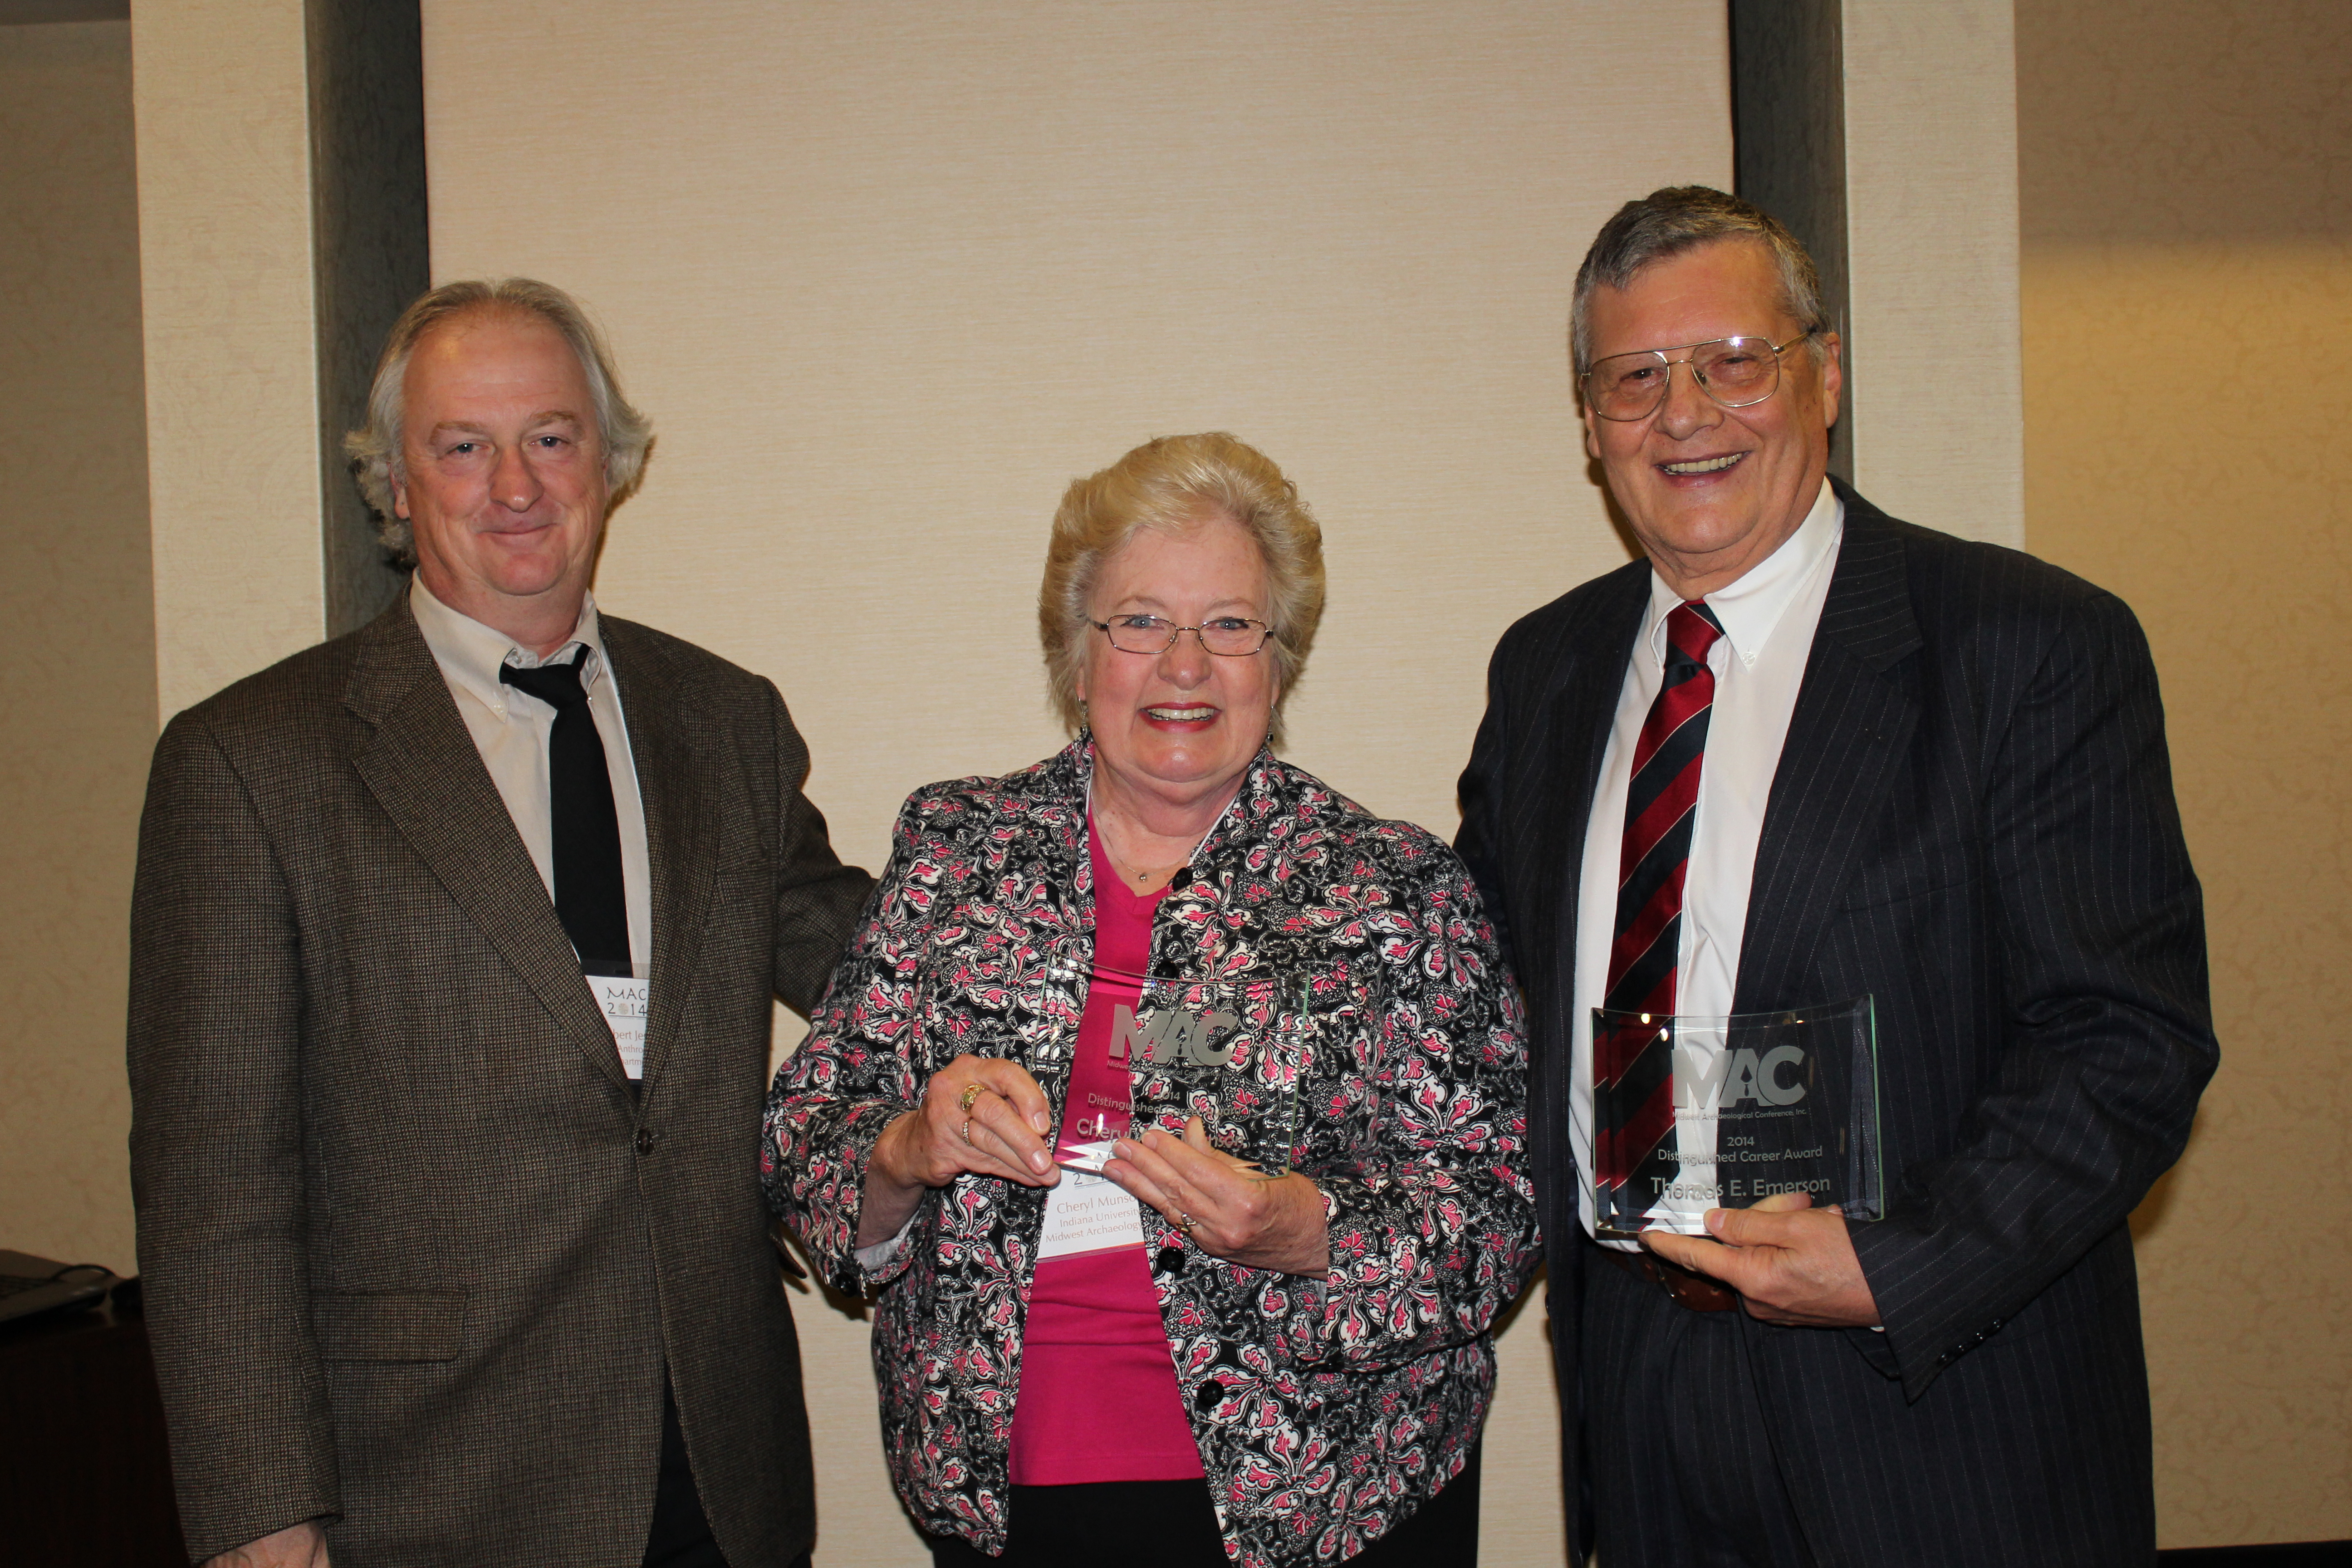 Dr. Robert Jeske, Cheryl Munson, and Dr. Thomas E. Emerson (left to right)